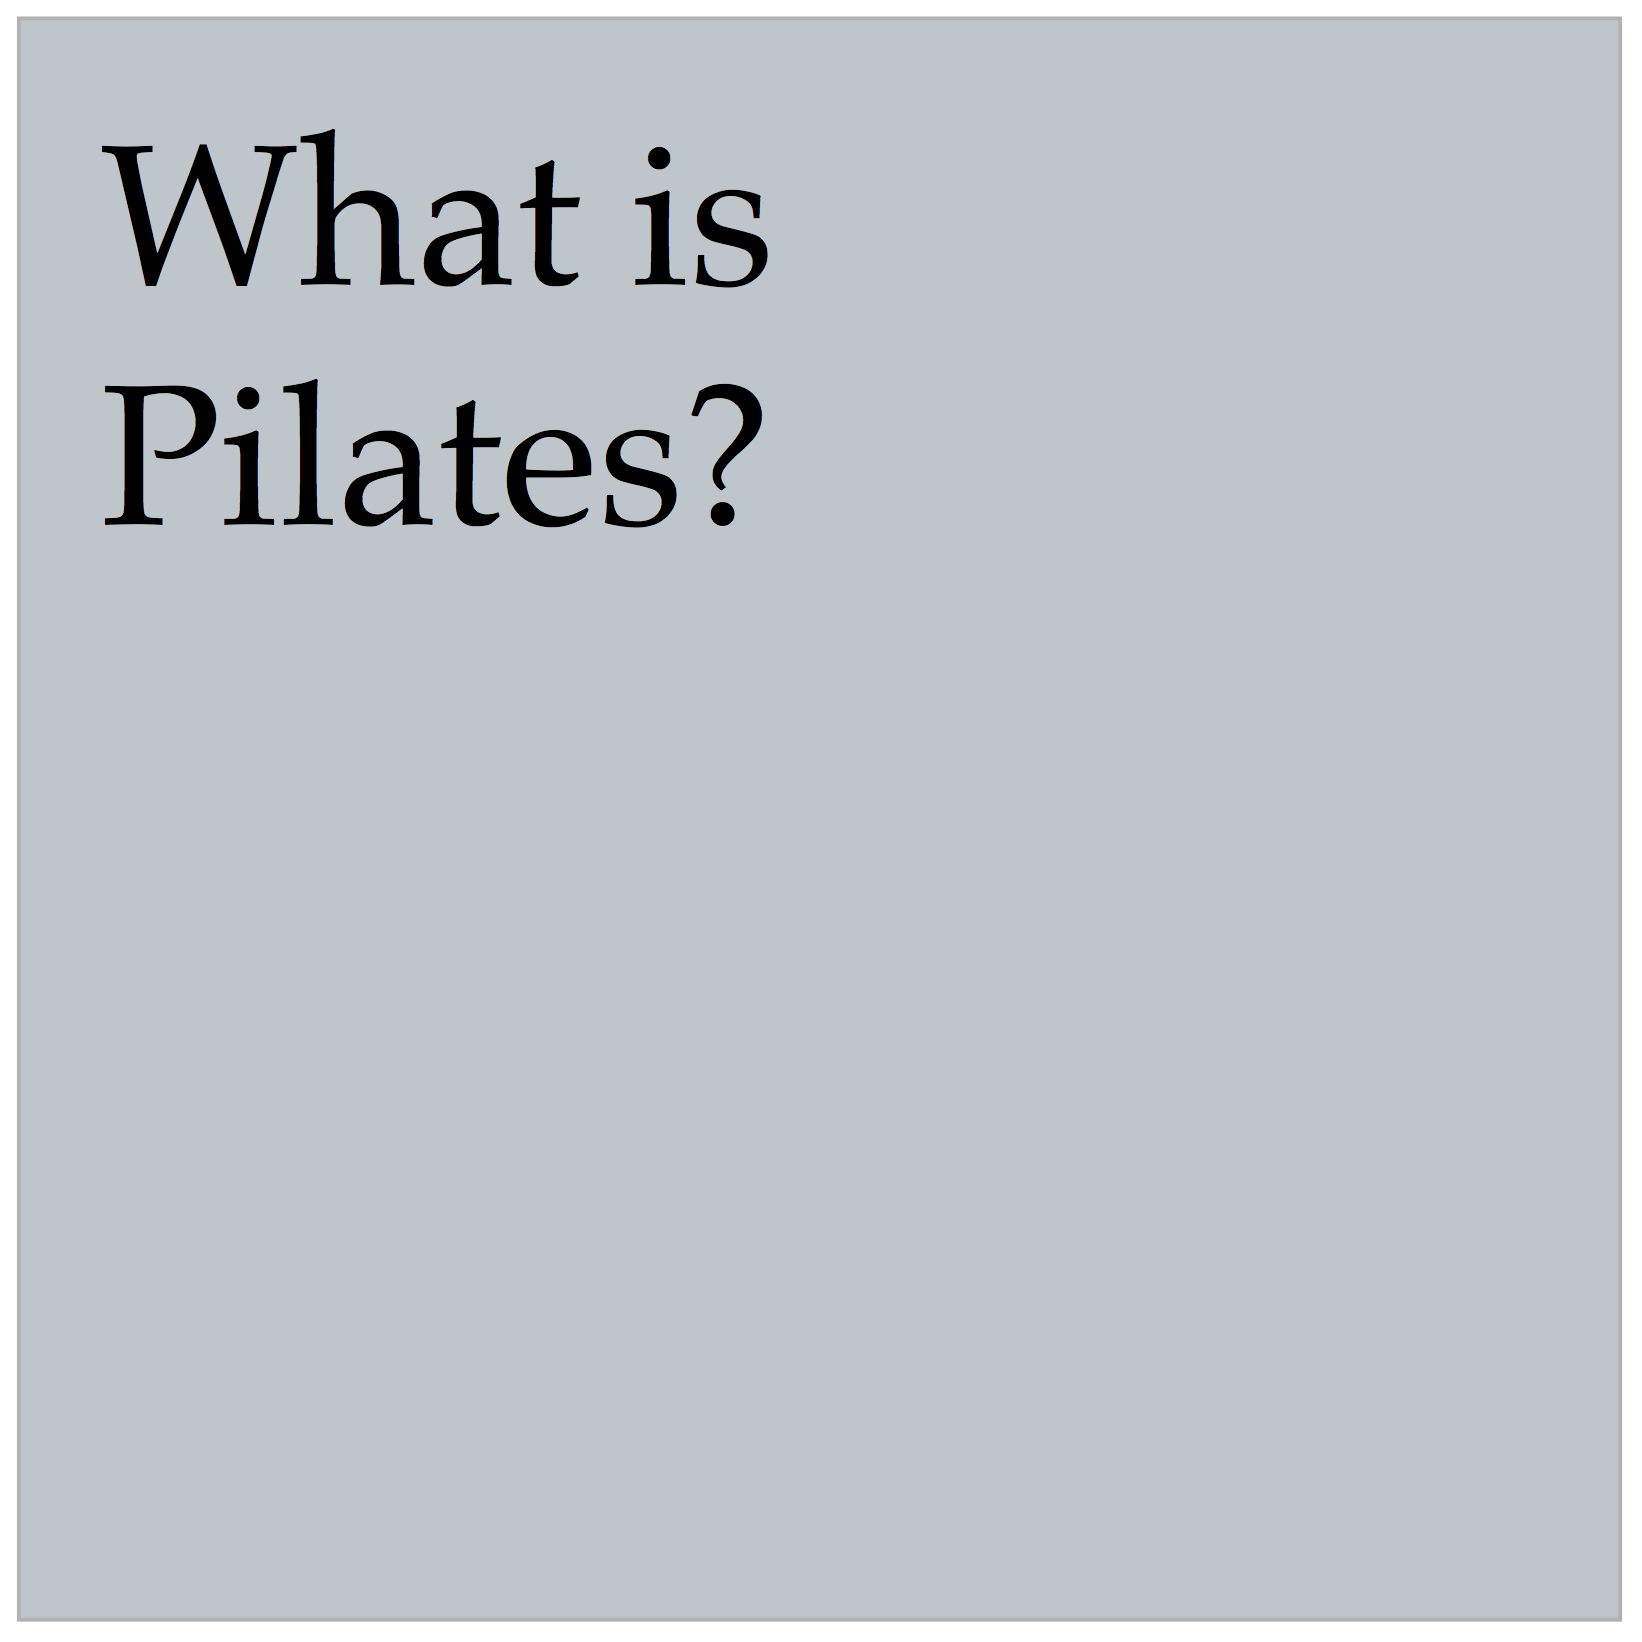 Pilates is an exercise system originally developed by a man named Joseph Pilates in the early 1900's.  With props and equipment, Pilates can be adapted to suit any individual. Whether you are recovering from an accident or injury, cross training for competitive sports, or you just want stronger abdominals and your back to stop hurting, Pilates can meet your circumstances and safely help you grow towards your goals.   CONTEMPORARY PILATES TEACHES   - strong core  - healthy, mobile spine  - balance of flexibility and stability  - balanced symmetry between both the sides of body   WITH OUR CURRENT LIFESTYLES, PILATES CAN   - improve your posture  - relieve low back pain  - increase body awareness  - create long, lean muscle development  - improve balance, flexibility + coordination  - improve athletic performance  - create more ease and efficient movement patterns